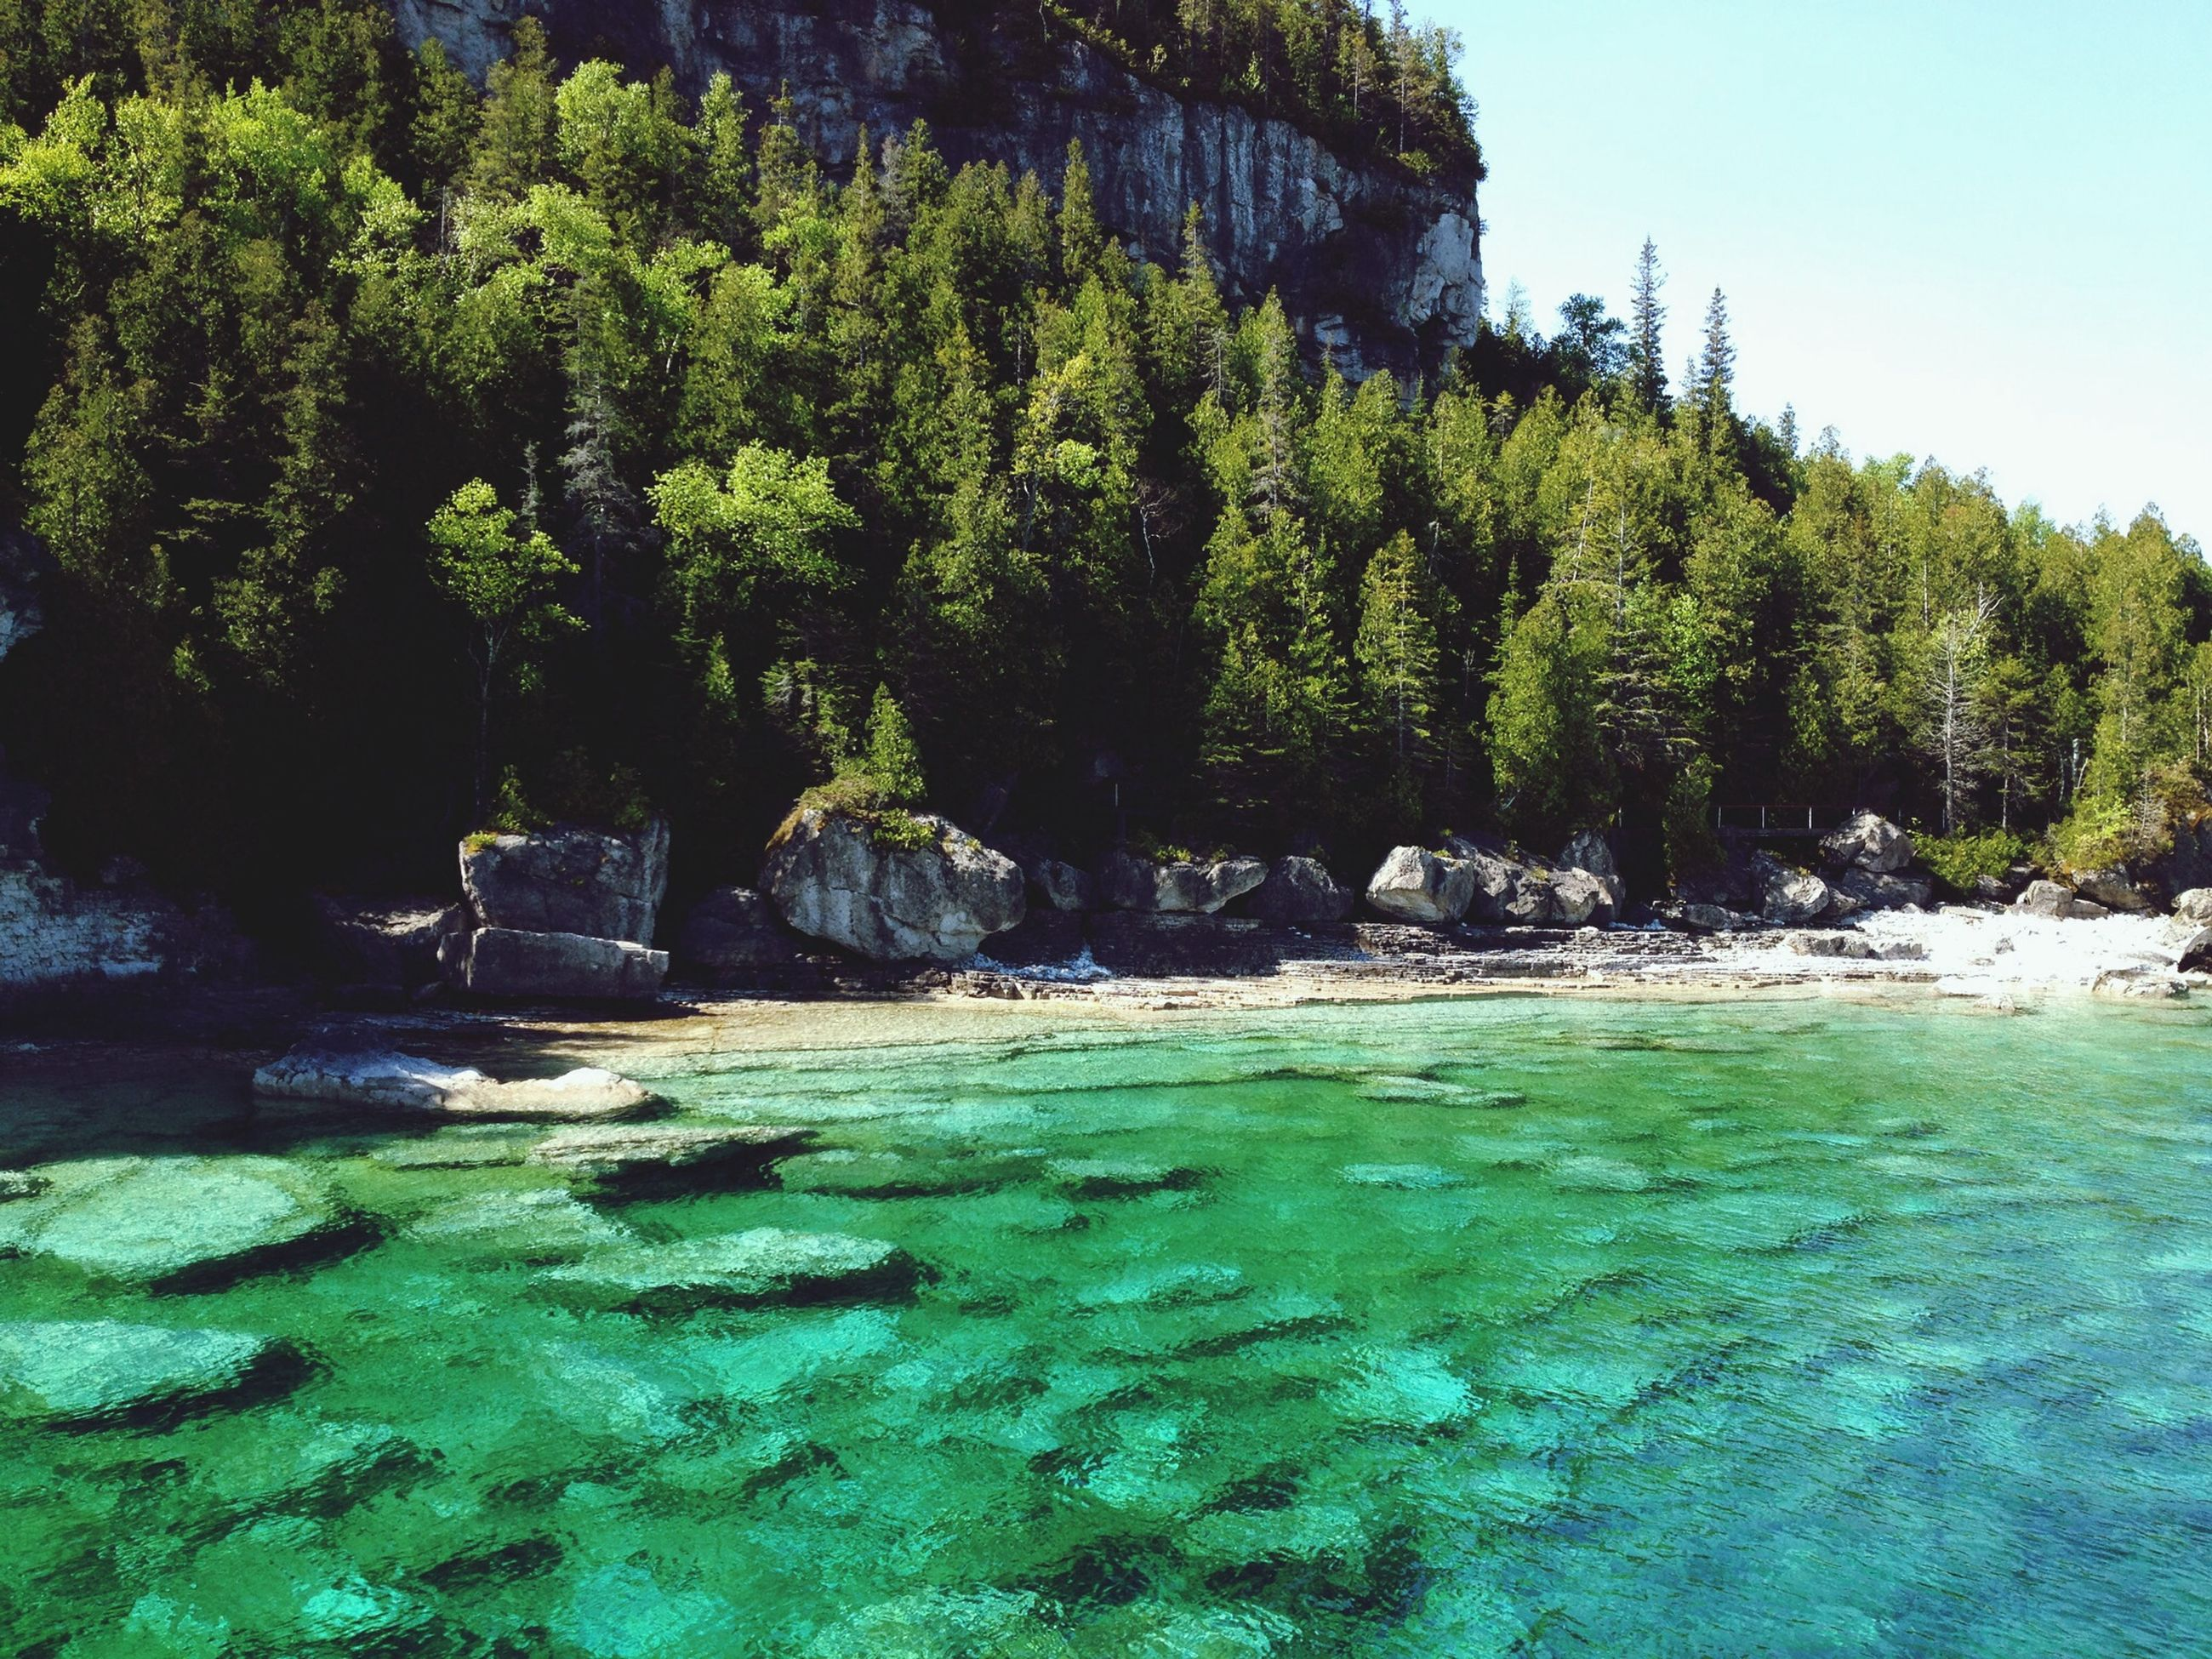 water, tree, tranquility, tranquil scene, green color, scenics, beauty in nature, nature, growth, beach, idyllic, sea, sunlight, day, rock - object, clear sky, plant, grass, outdoors, green